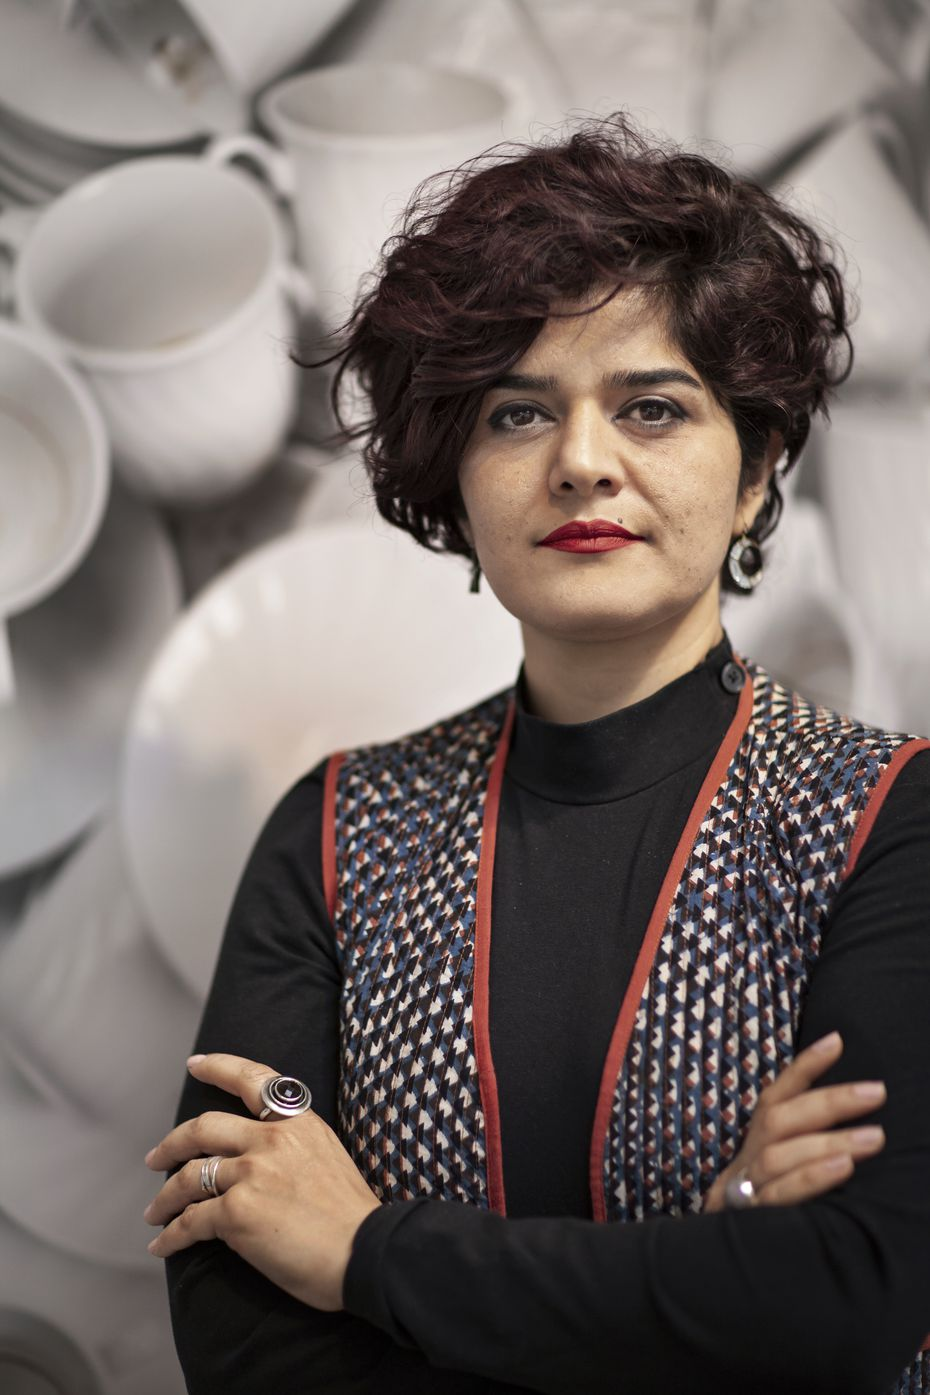 Nida Bangash, an Iranian-Pakistani artist who lives in Dallas, explores colonialism and the intersection of feminism and race in her new exhibition at Talley Dunn Gallery in Dallas.